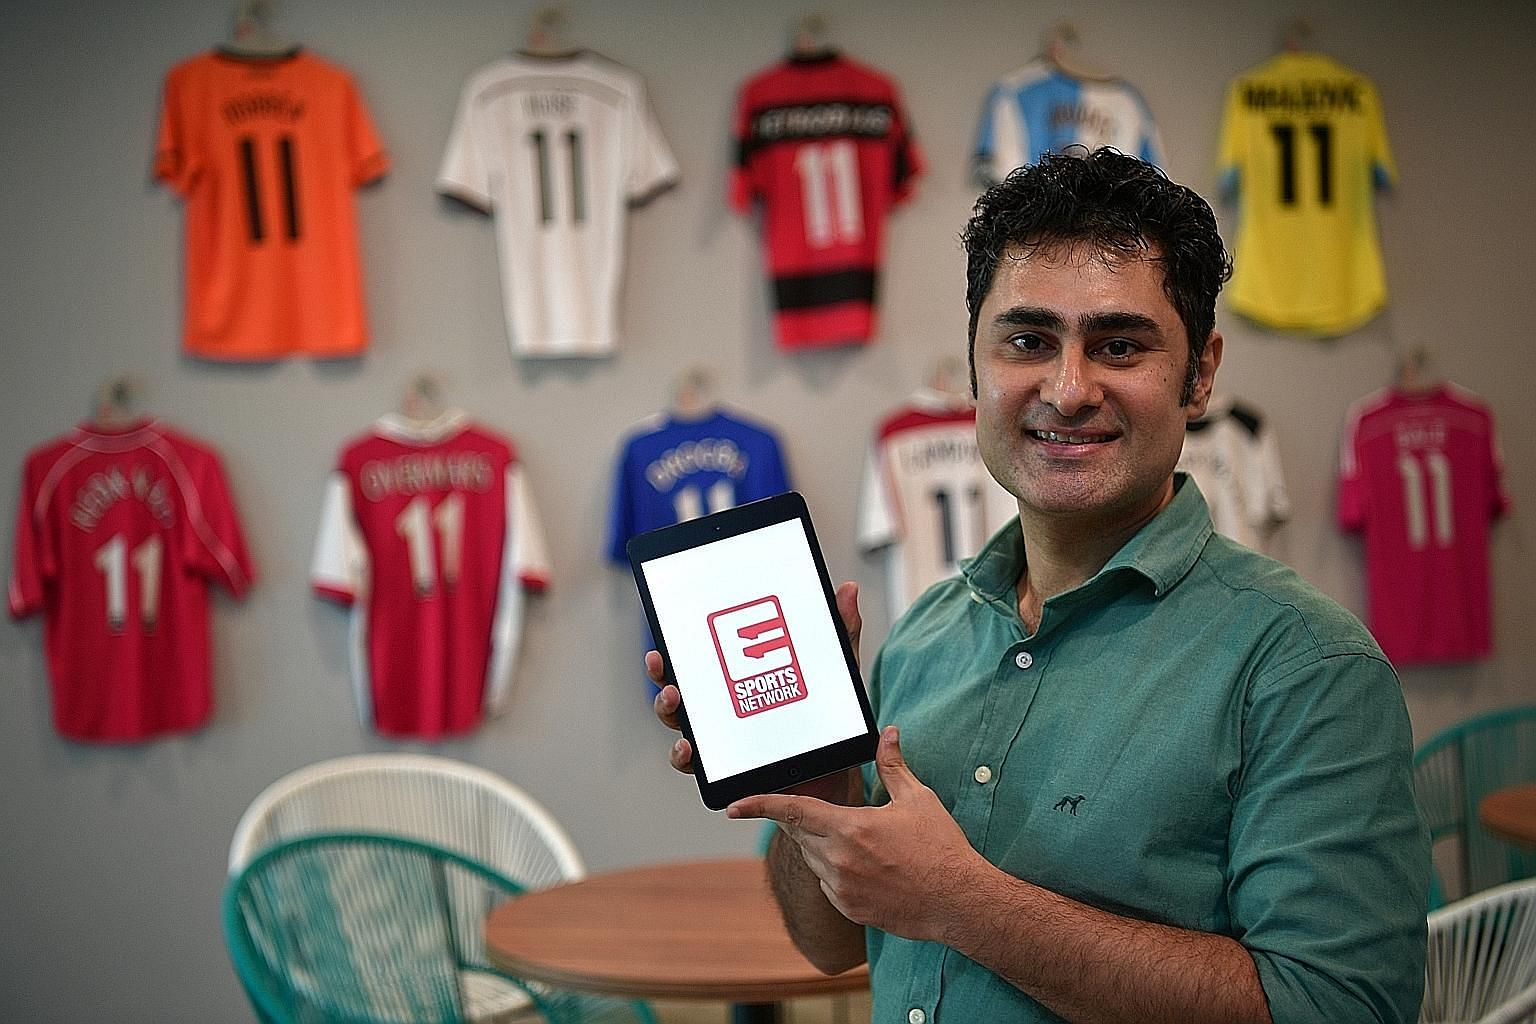 Eleven's popular $19.90-a-month package, which allows users to watch three live EPL games and three delayed telecasts per week on its website at elevensports.sg or via the Eleven Sports app (right), will be reduced to $9.90 after EPL content is dropp